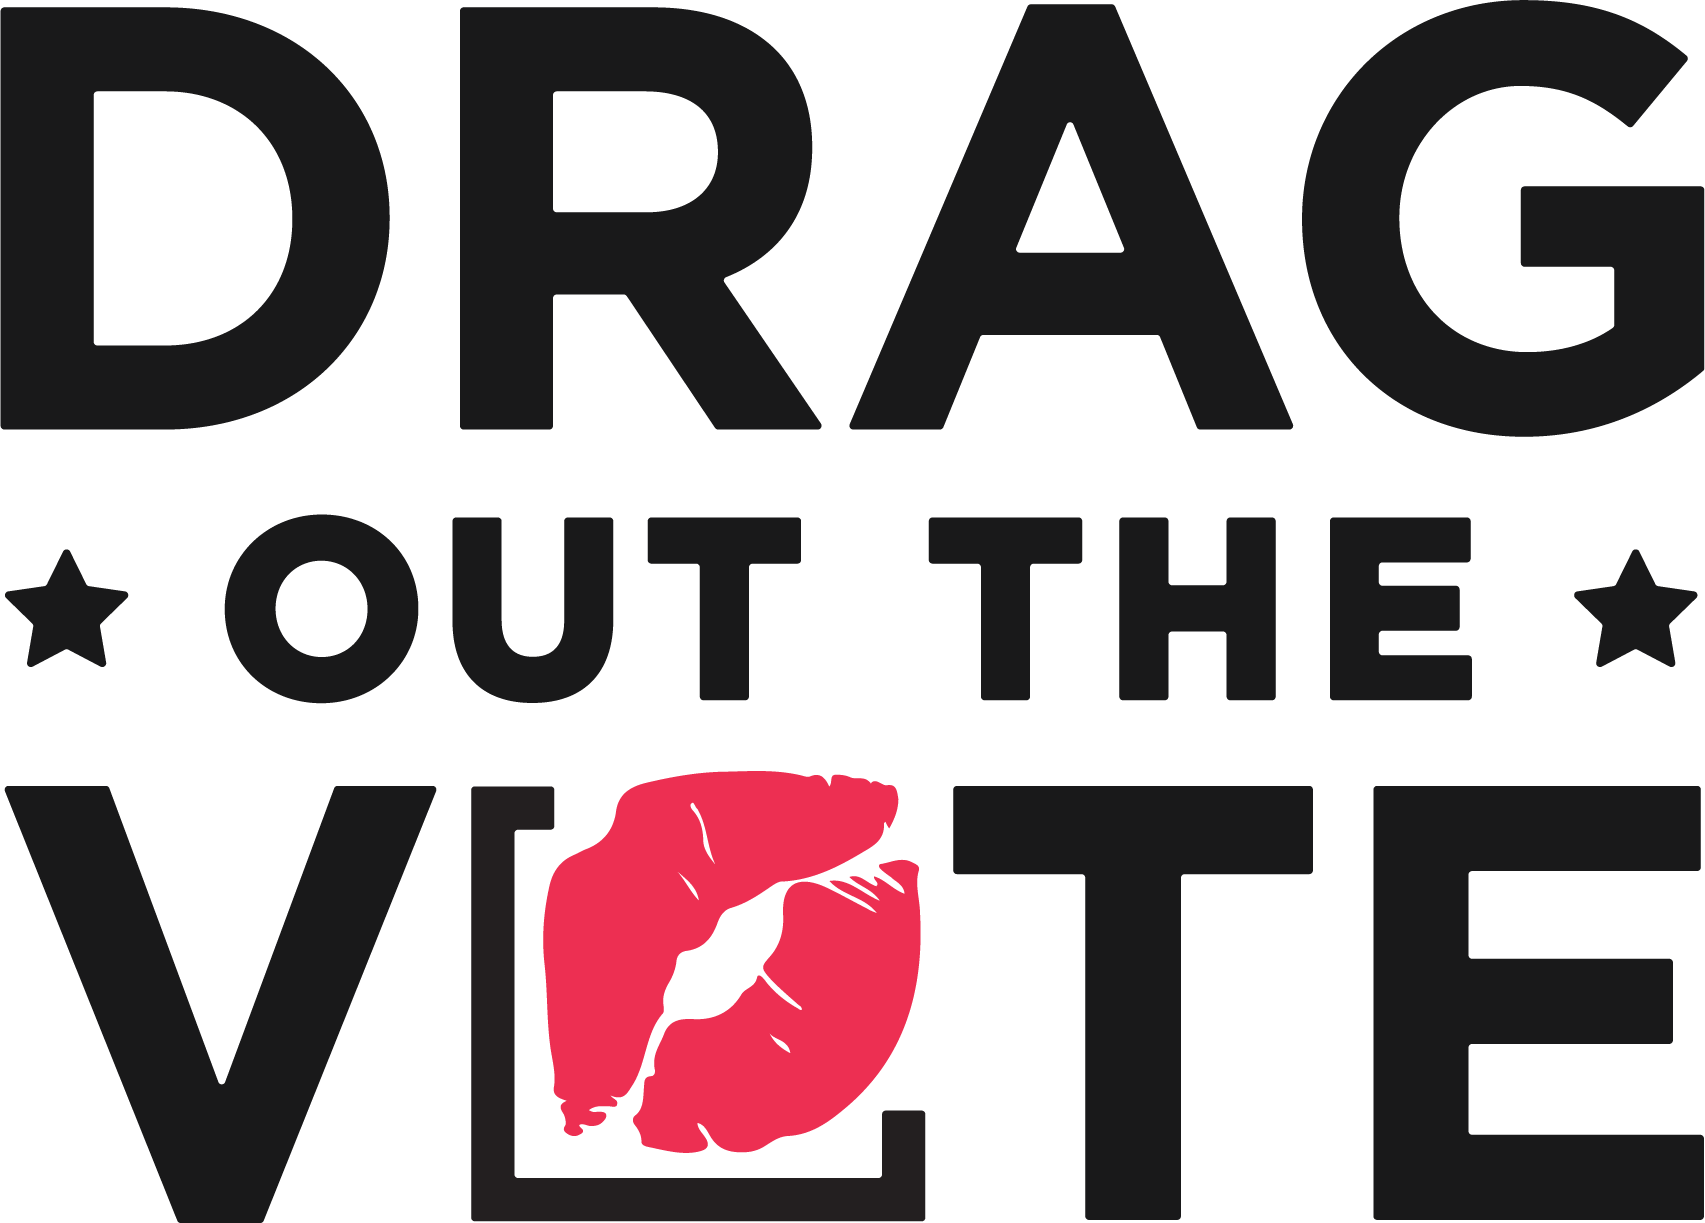 Drag Out The Vote